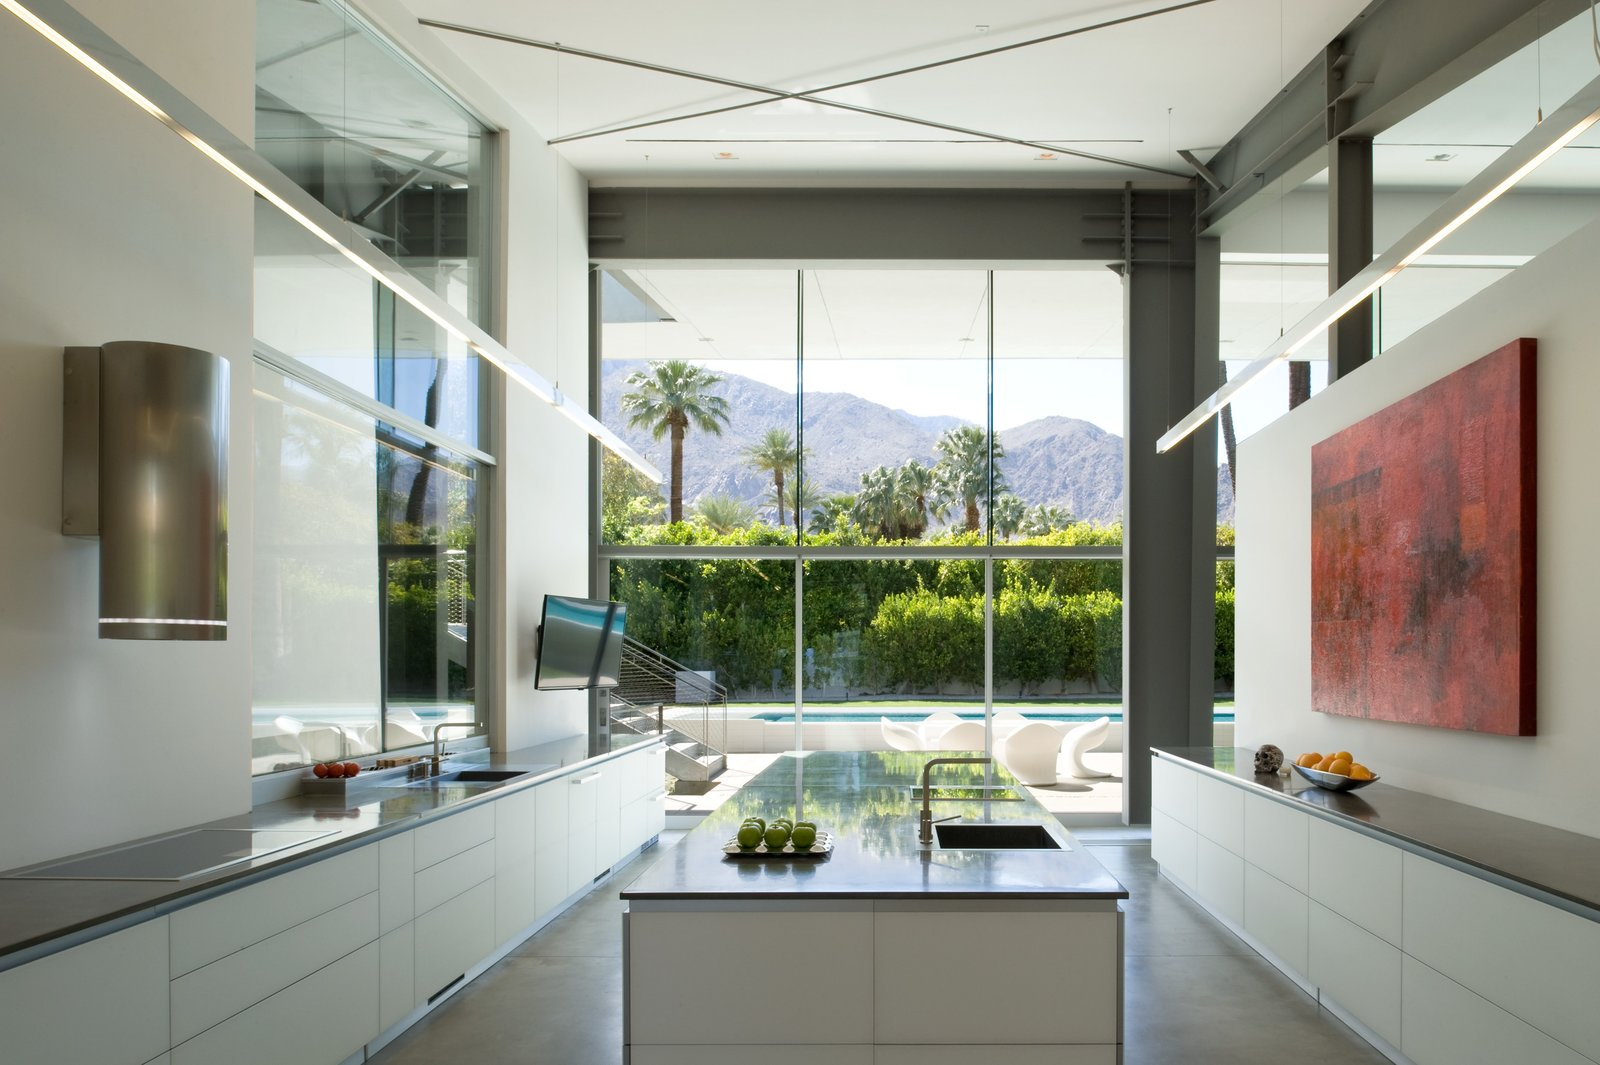 The glass wall on one end of the kitchen frames the mountain views. The cabinetry, all glass-fronted lowers,  with a convection stove and cylindrical vent make this room about the view and the art.